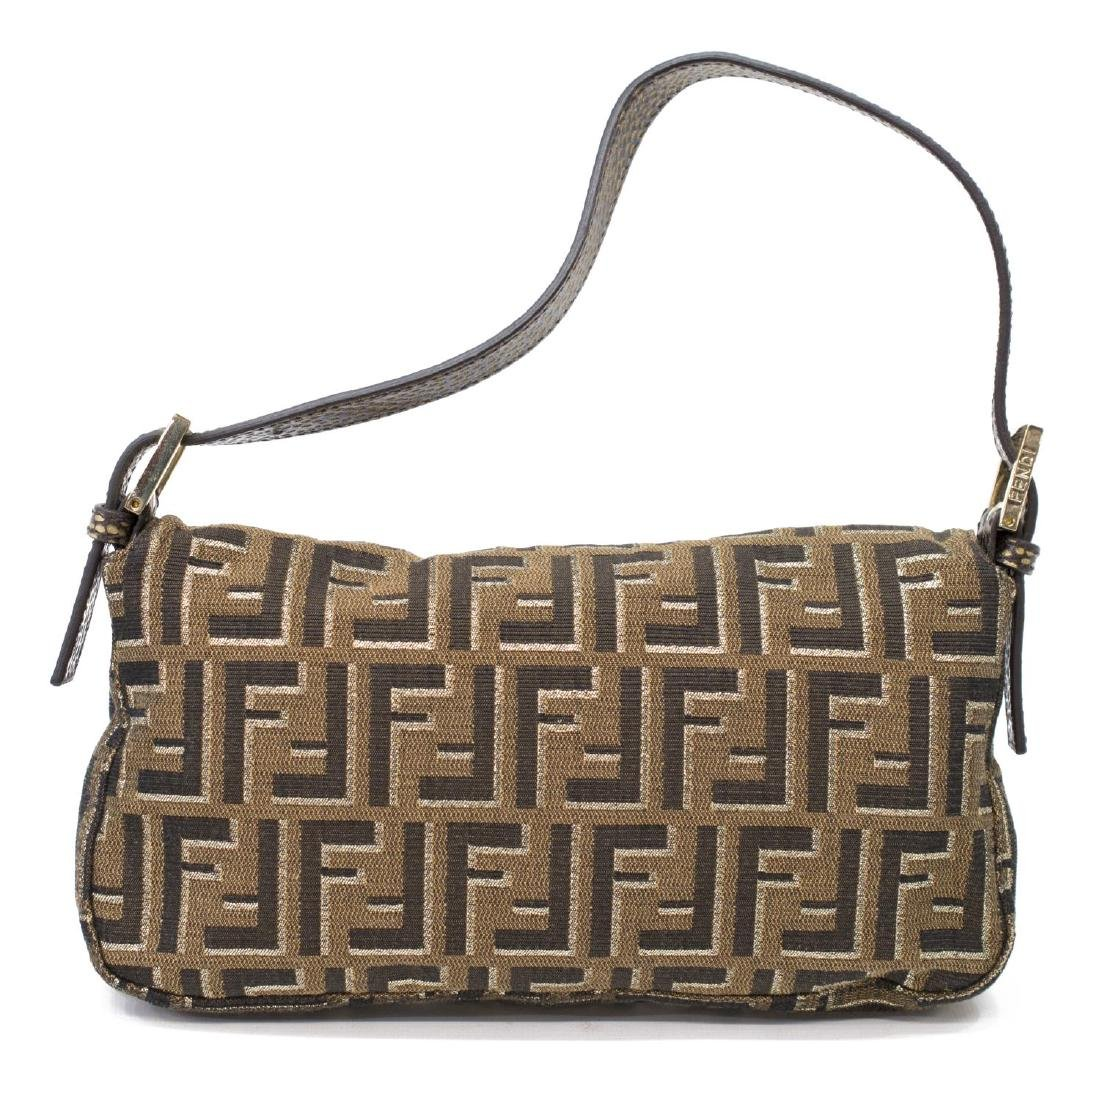 FENDI GOLD ZUCCA MONOGRAM BAGUETTE SHOULDER BAG - 2